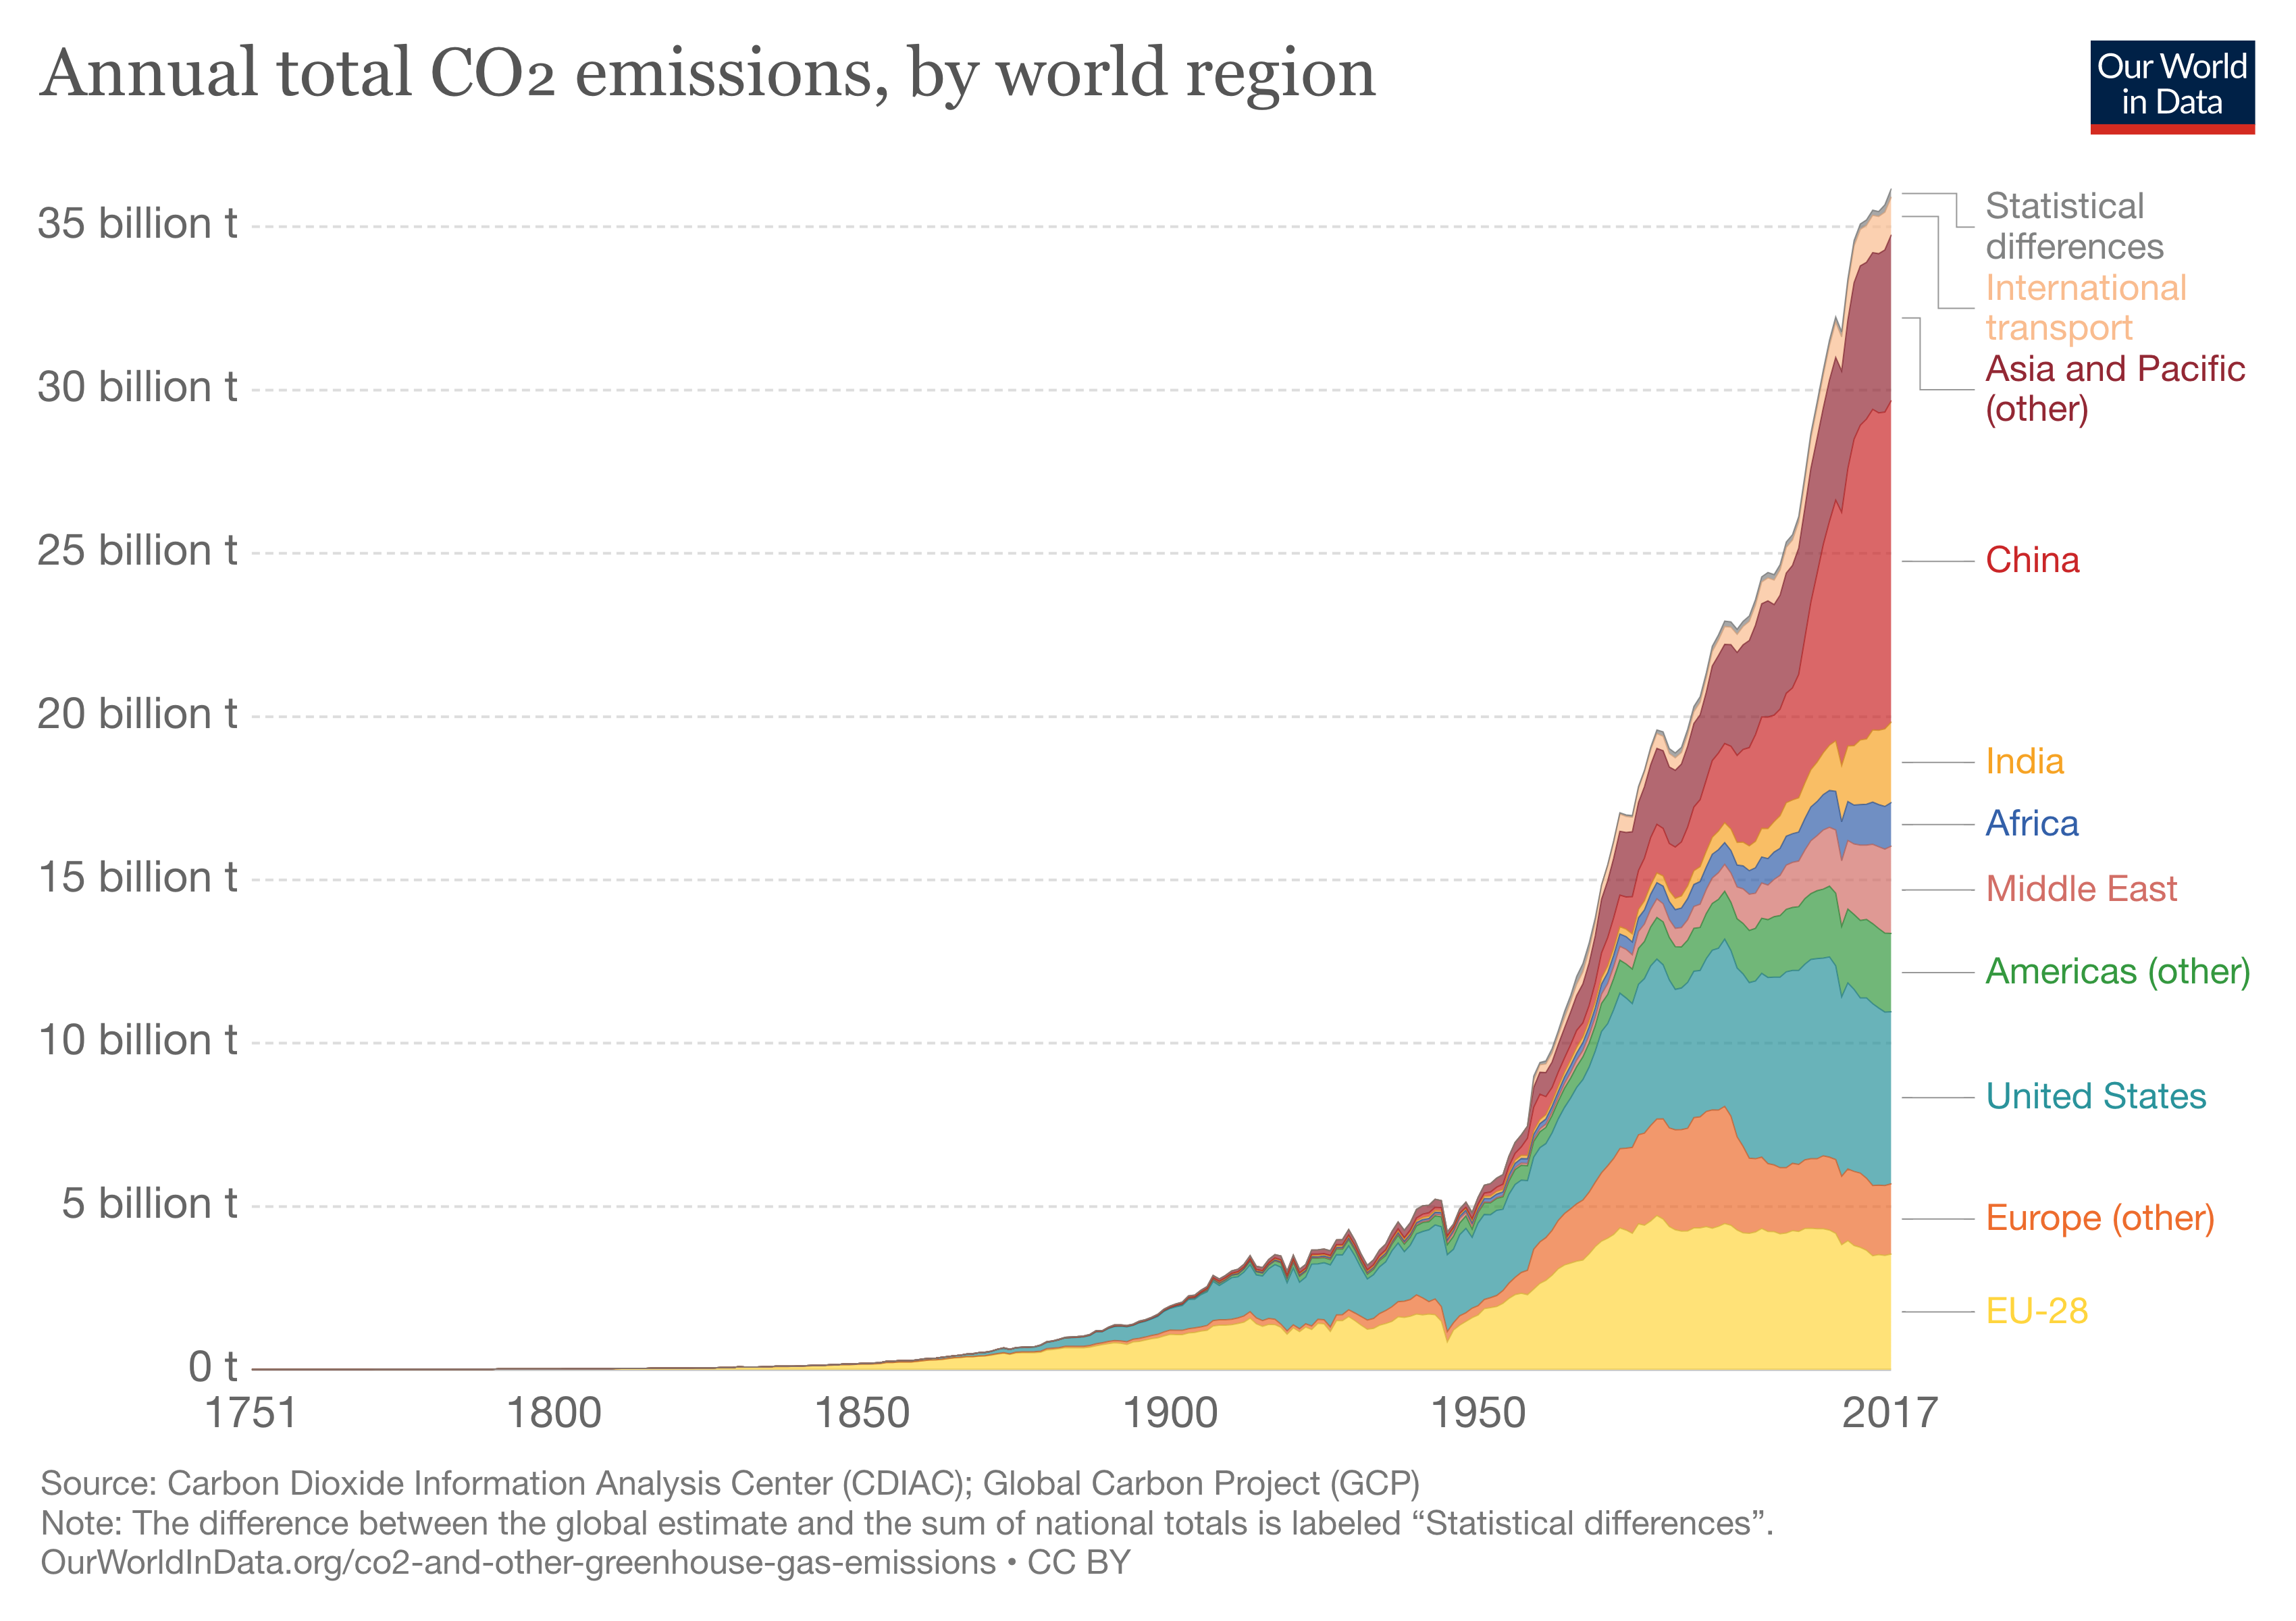 Annual CO2 emissions by region